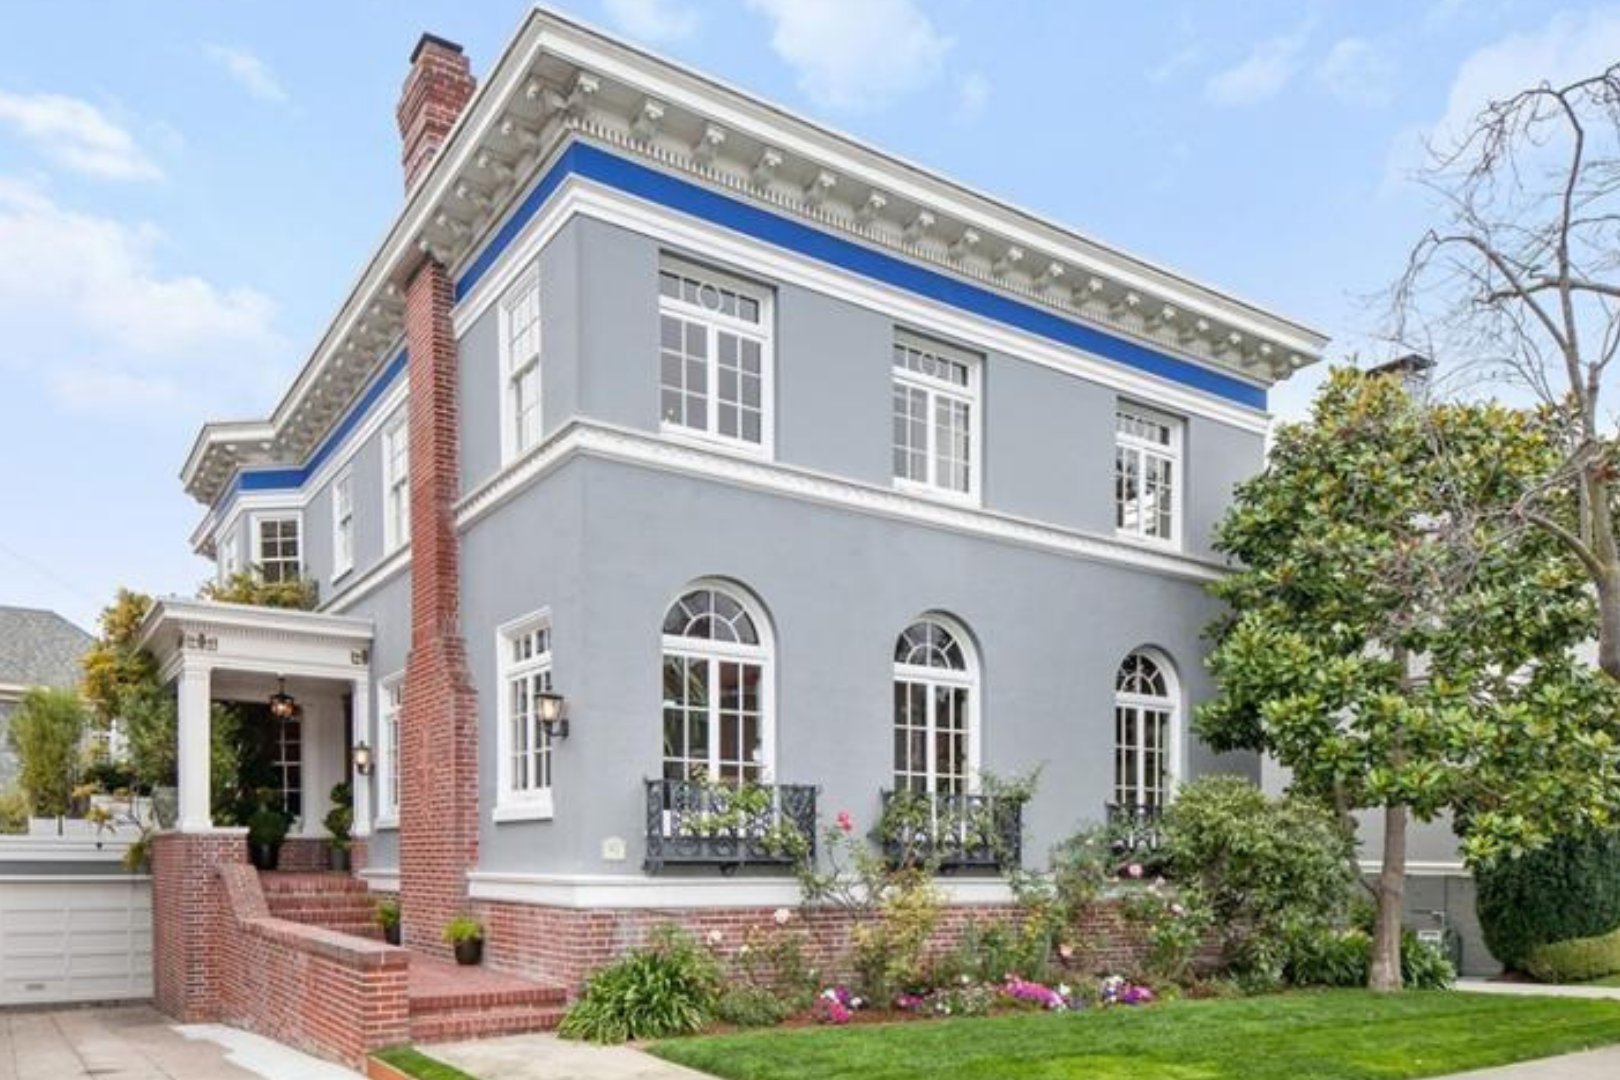 $6,500,000 - BUYER | OFF MARKET91 Commonwealth Avenue, San Francisco